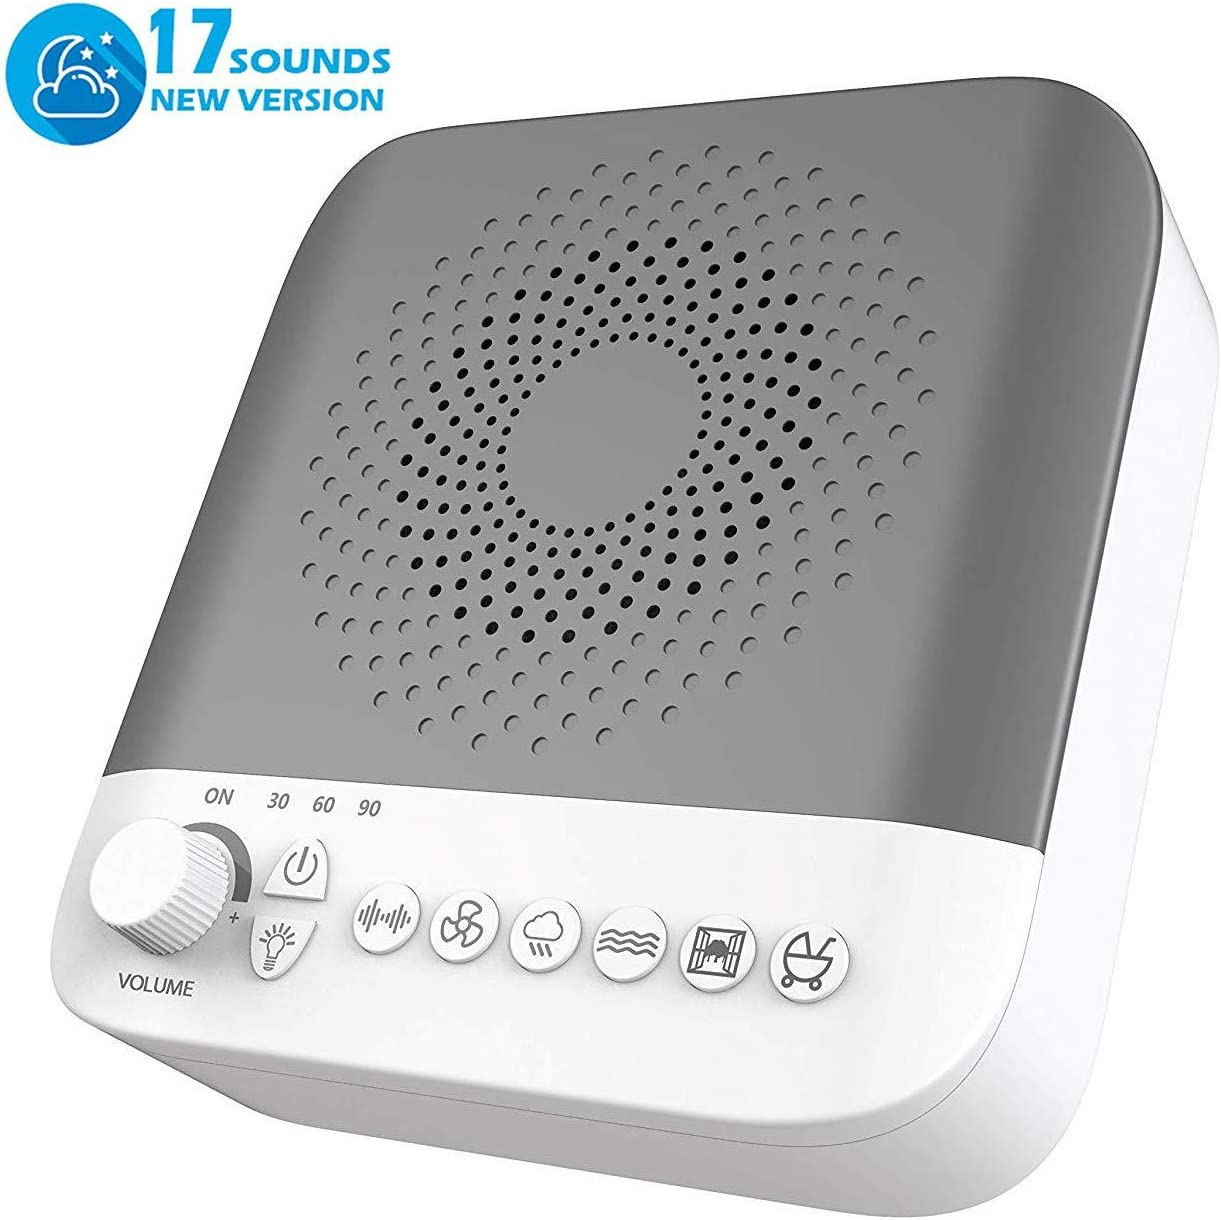 White Noise Machine – High Fidelity Sounds,Portable Sleep Therapy Machine,Sleep Sound Machine with 17 Non-Looping Soothing Sounds – for Kids and Adults